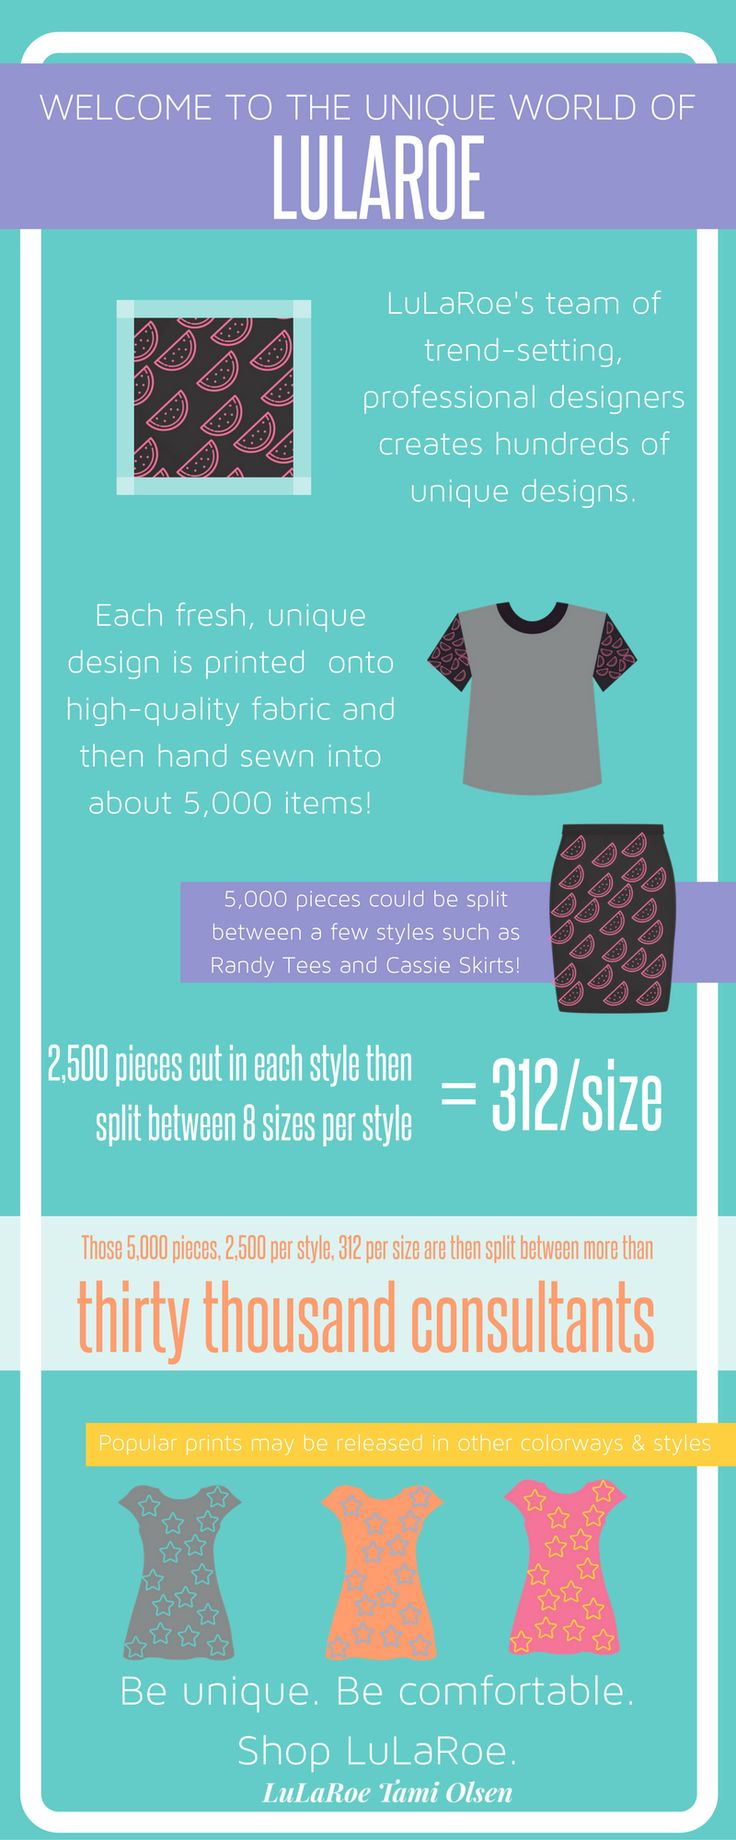 LuLaRoe is a fun and comfortable clothing company! Join my group for more information:) www.facebook.com/groups/lularoetamiolsen